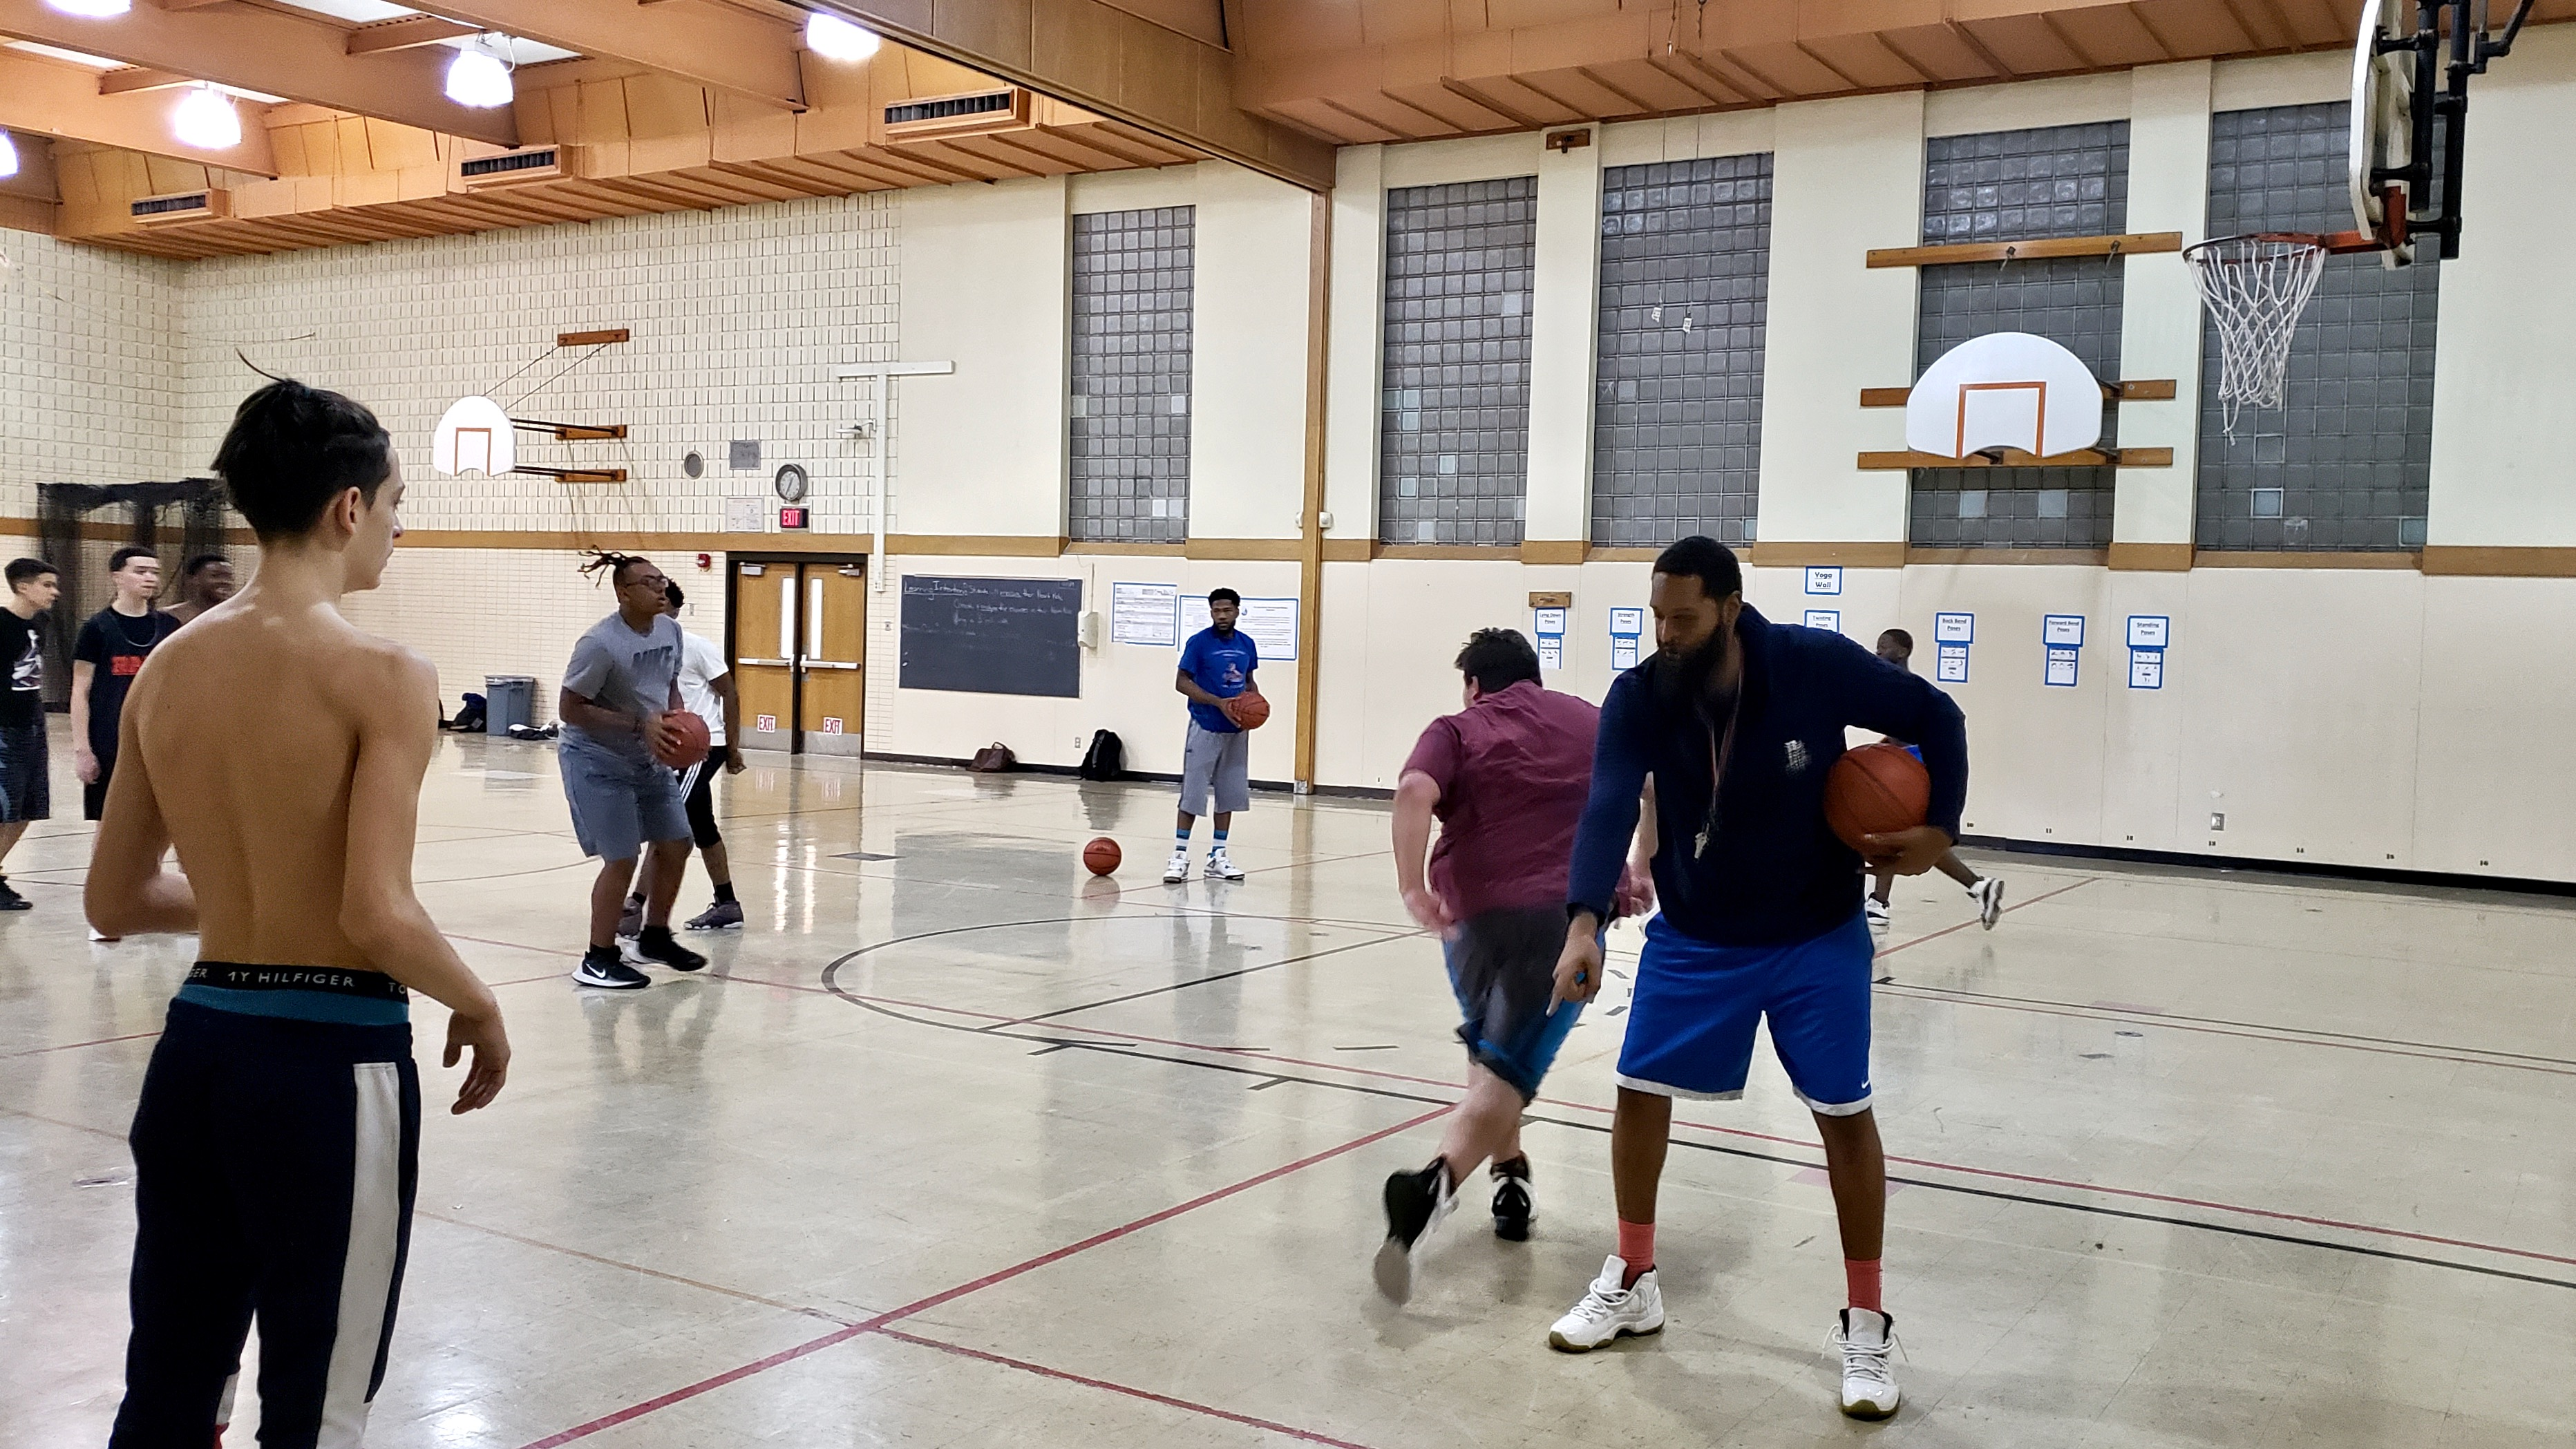 """""""We're not just trying to make them better players, we're trying to make them better people,"""" Pulaski/Carmen Southeast High School varsity basketball coach Melvin White says. Photo by Edgar Mendez/NNS."""